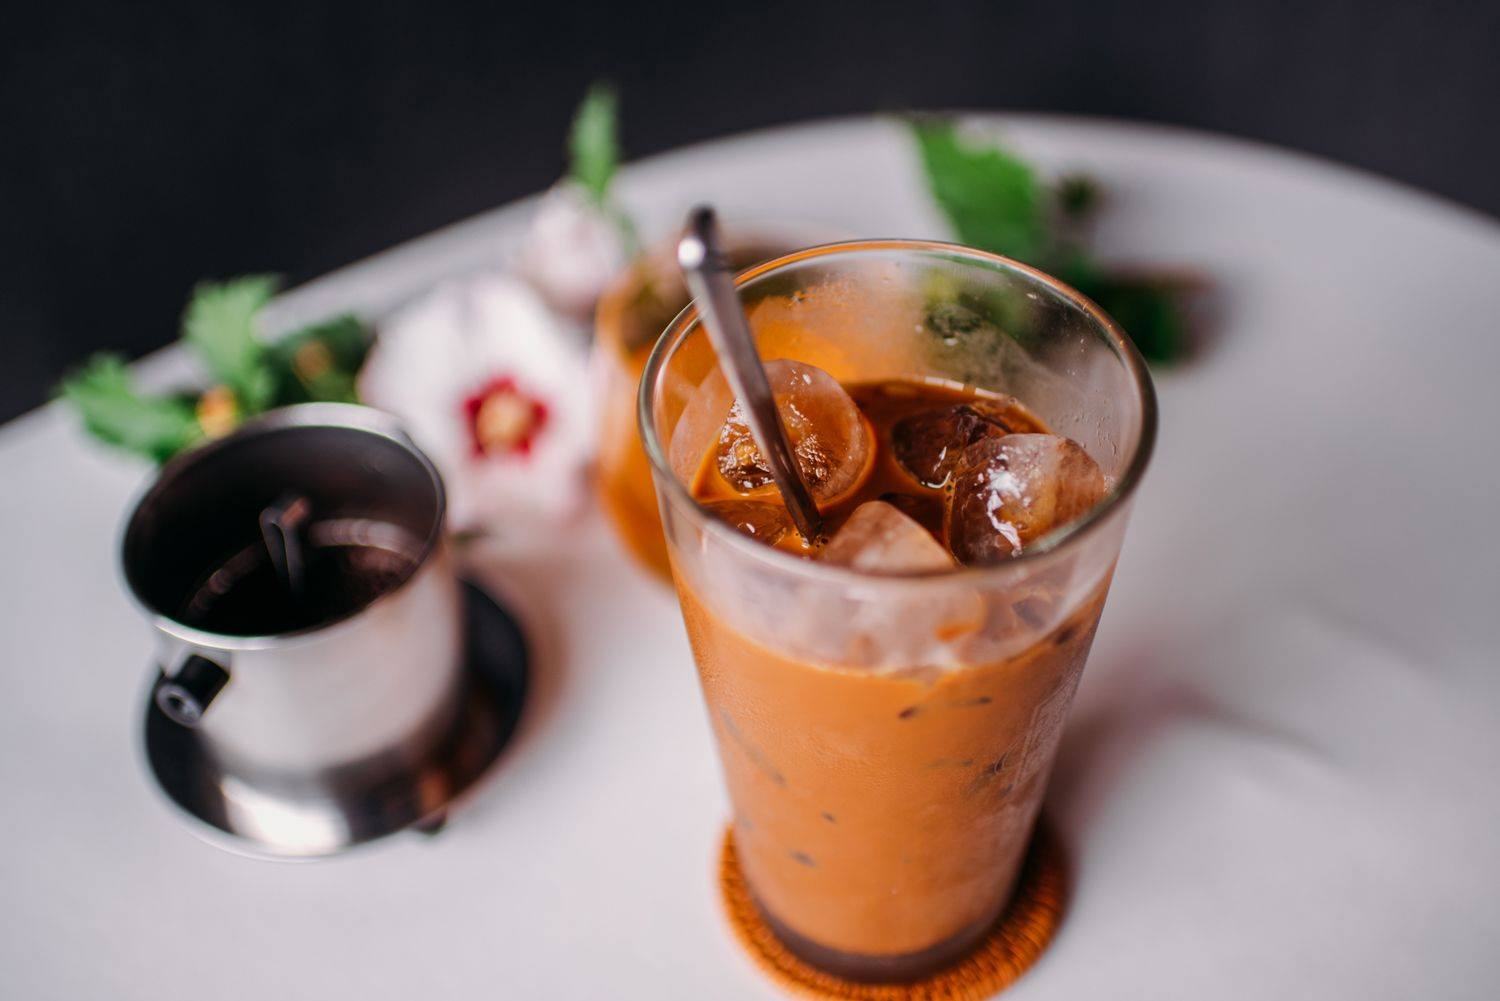 Iced Coffee with Condensed milk - Top 30 famous Vietnamese food